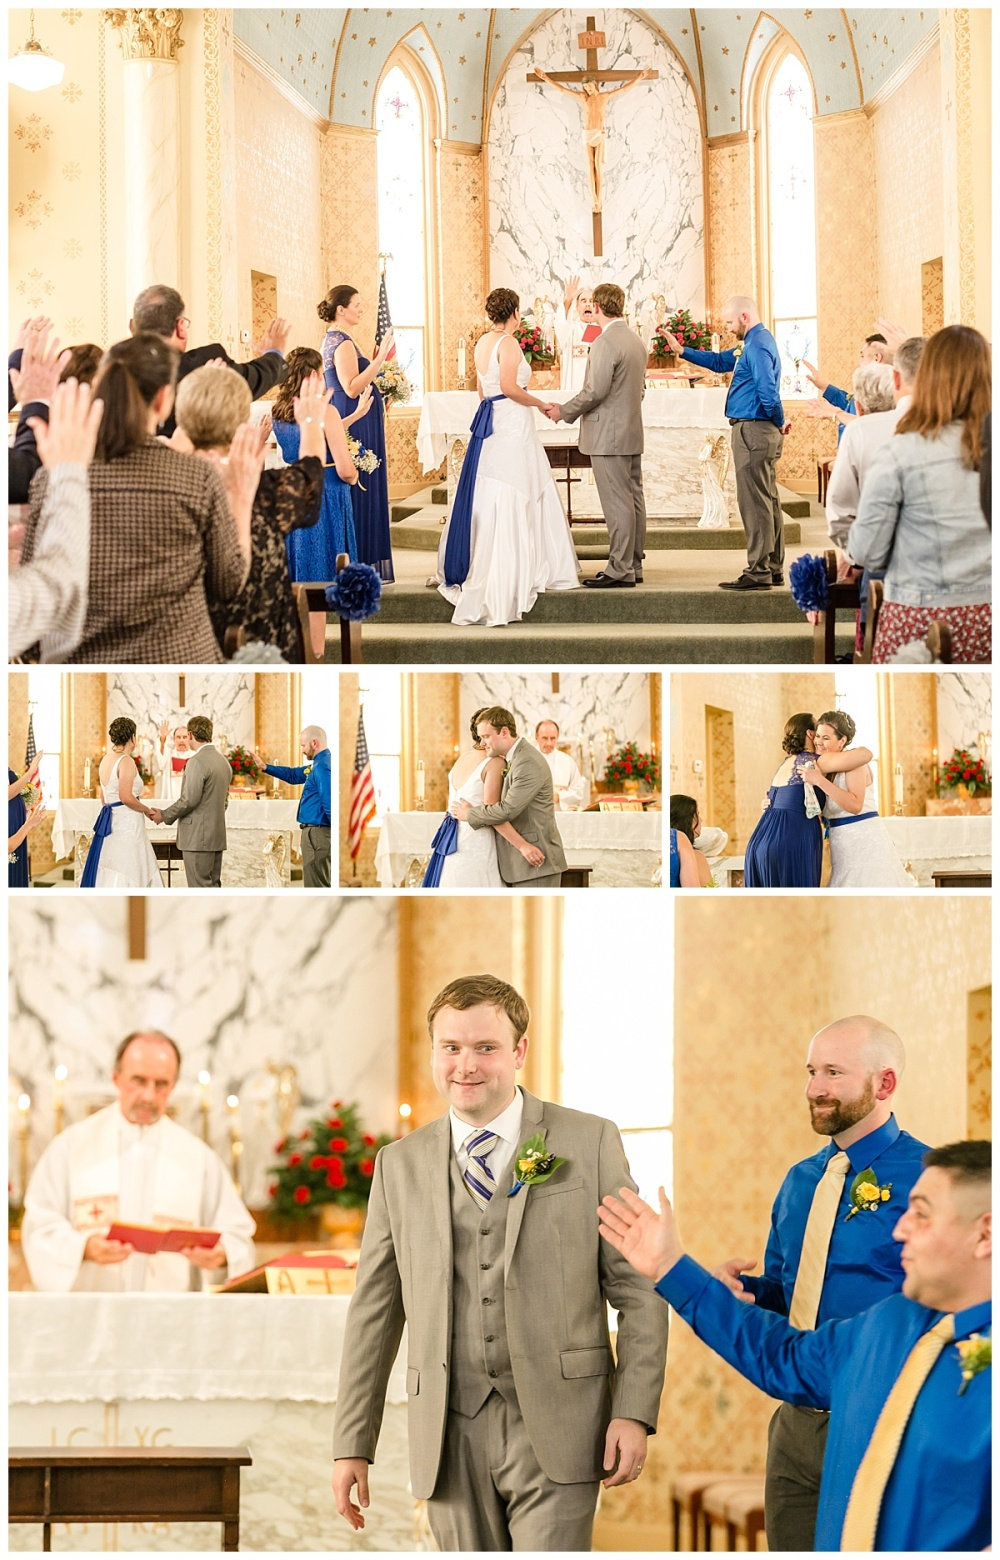 Texas-Wedding-Photographer-La-Coste-Our-Lady-Of-Grace-Church-Bride-Groom-Lego-Theme-Carly-Barton-Photography_0059.jpg